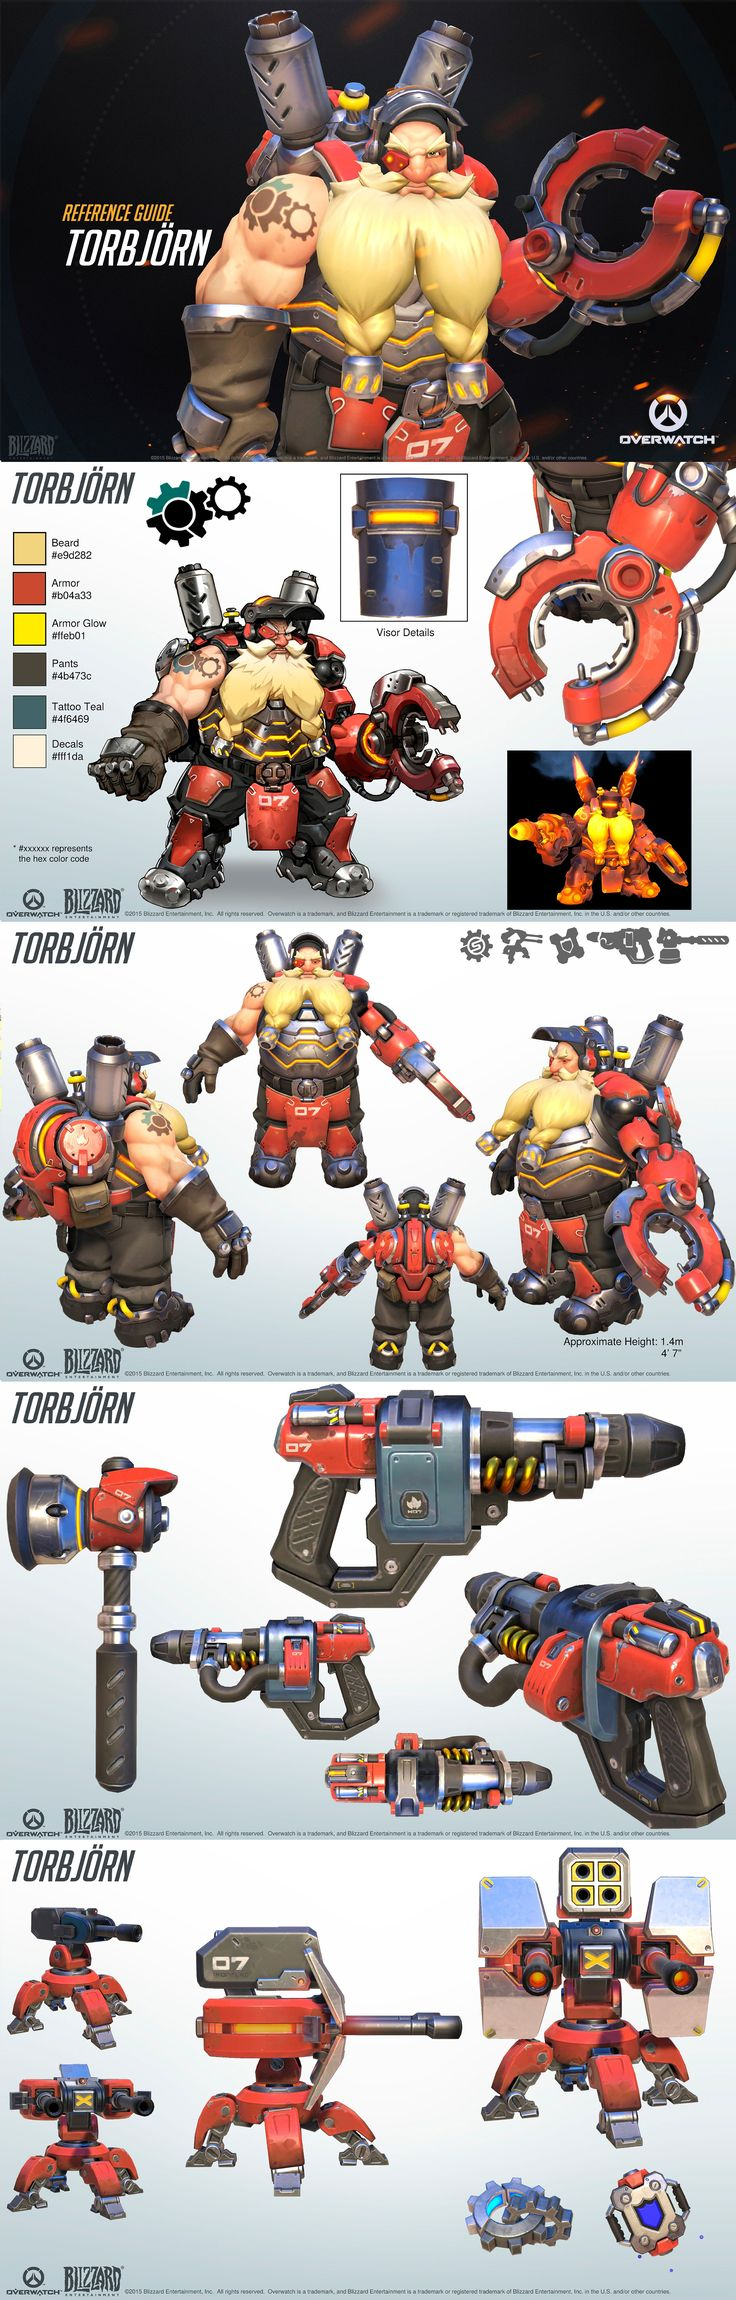 Character Design Handbook : Best images about overwatch blizzard on pinterest